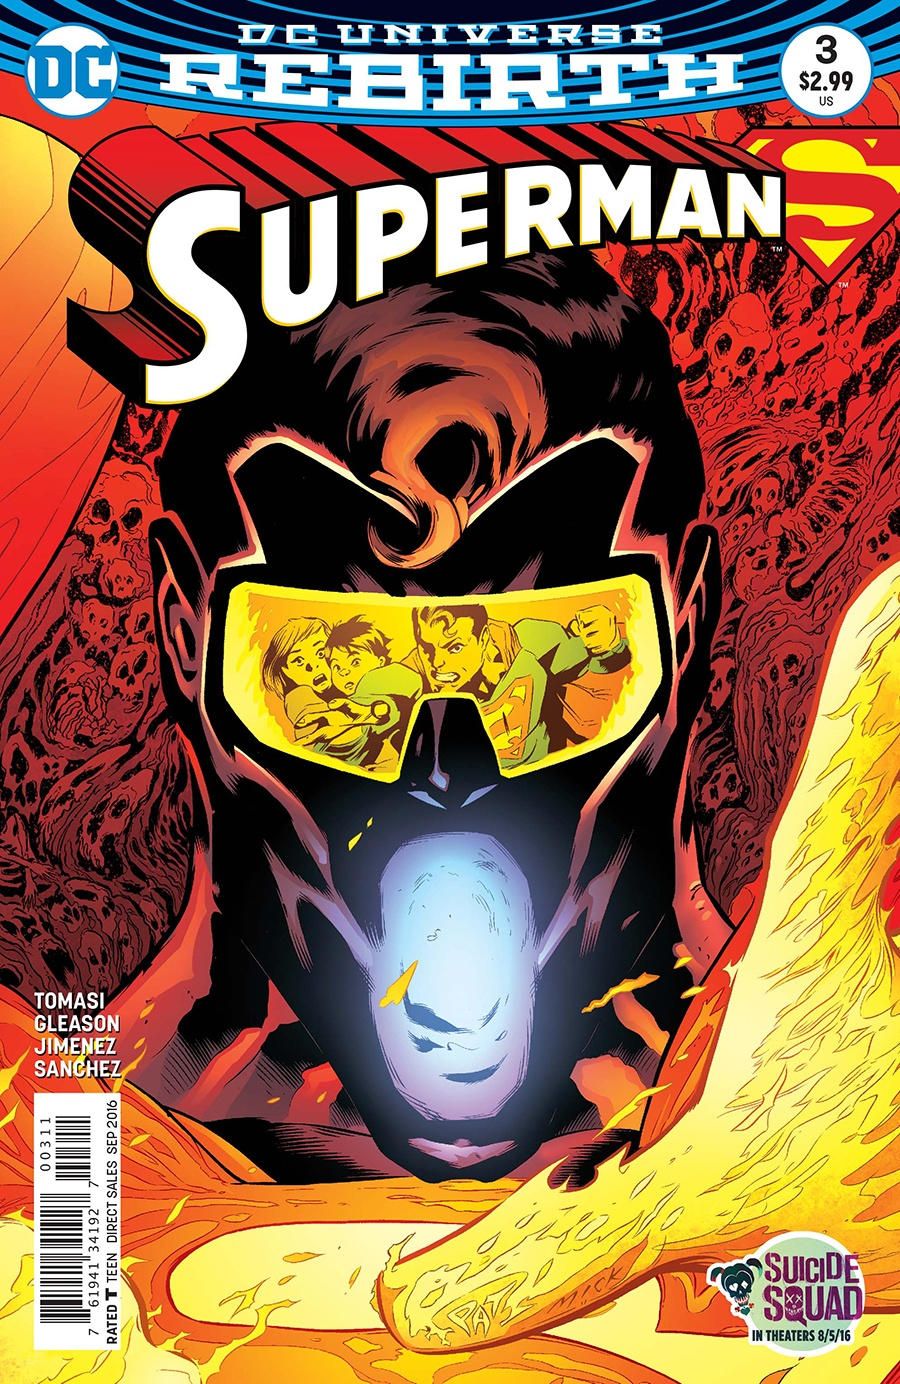 Superman #3 Review